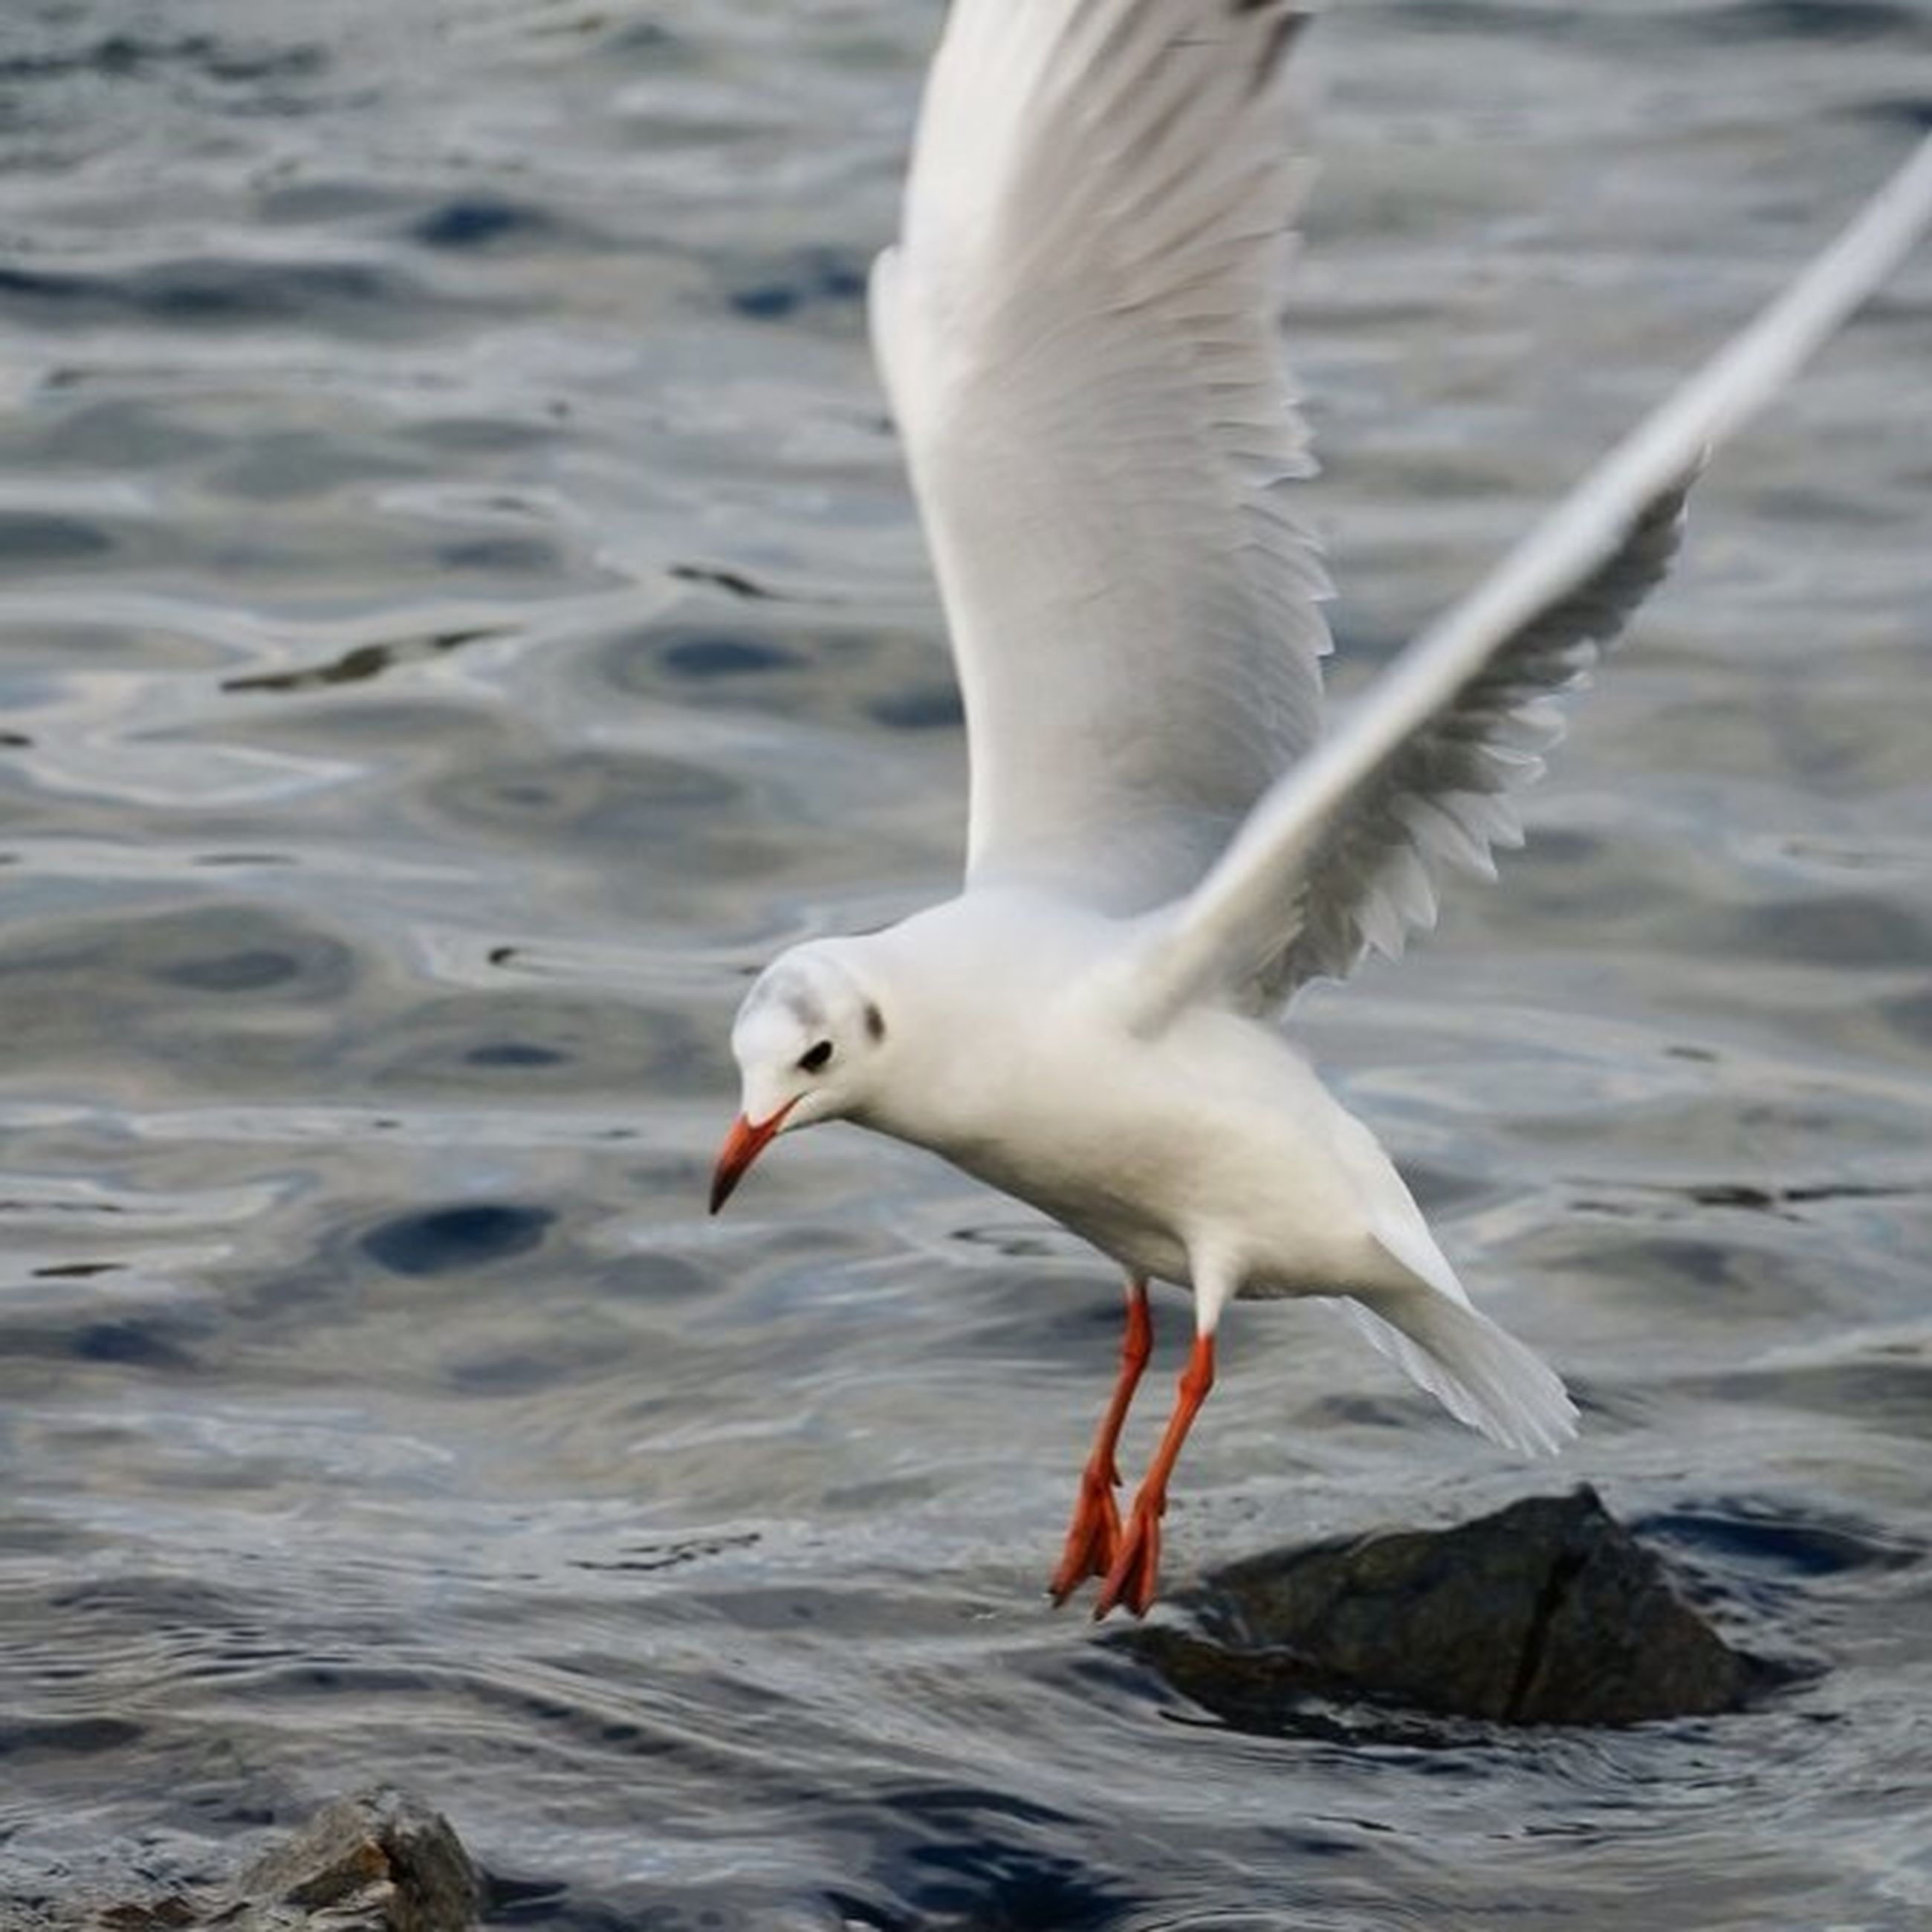 bird, animal themes, animals in the wild, water, wildlife, one animal, spread wings, flying, seagull, waterfront, white color, lake, nature, sea, motion, rippled, focus on foreground, mid-air, swimming, outdoors